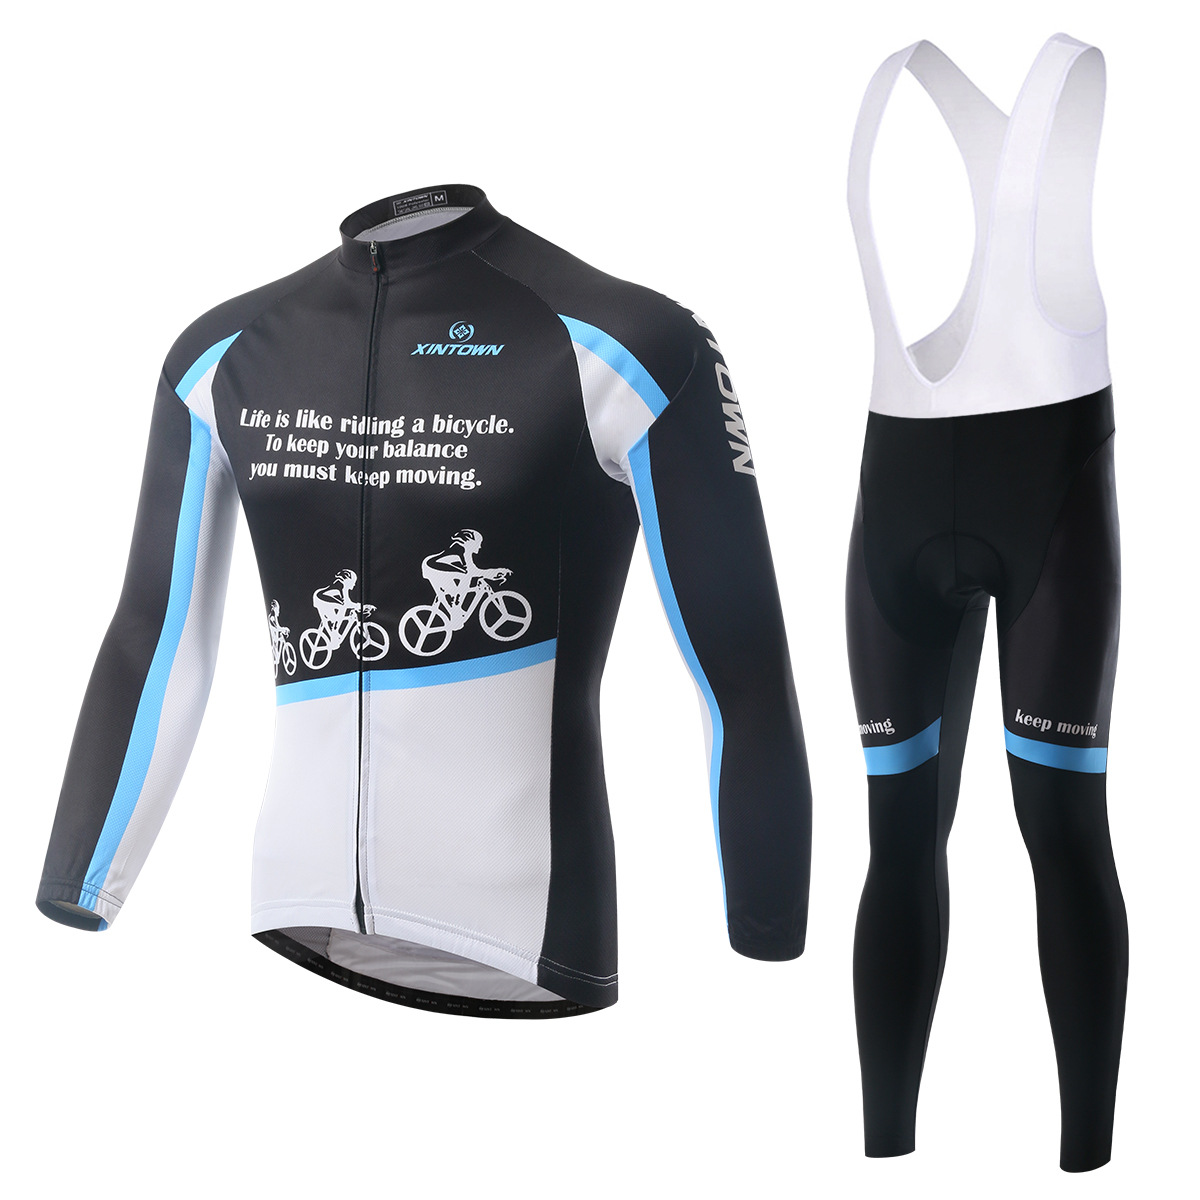 XINTOWN snow bike riding jersey strap long-sleeved suit wear bicycle suits fleece wind warm features underwear